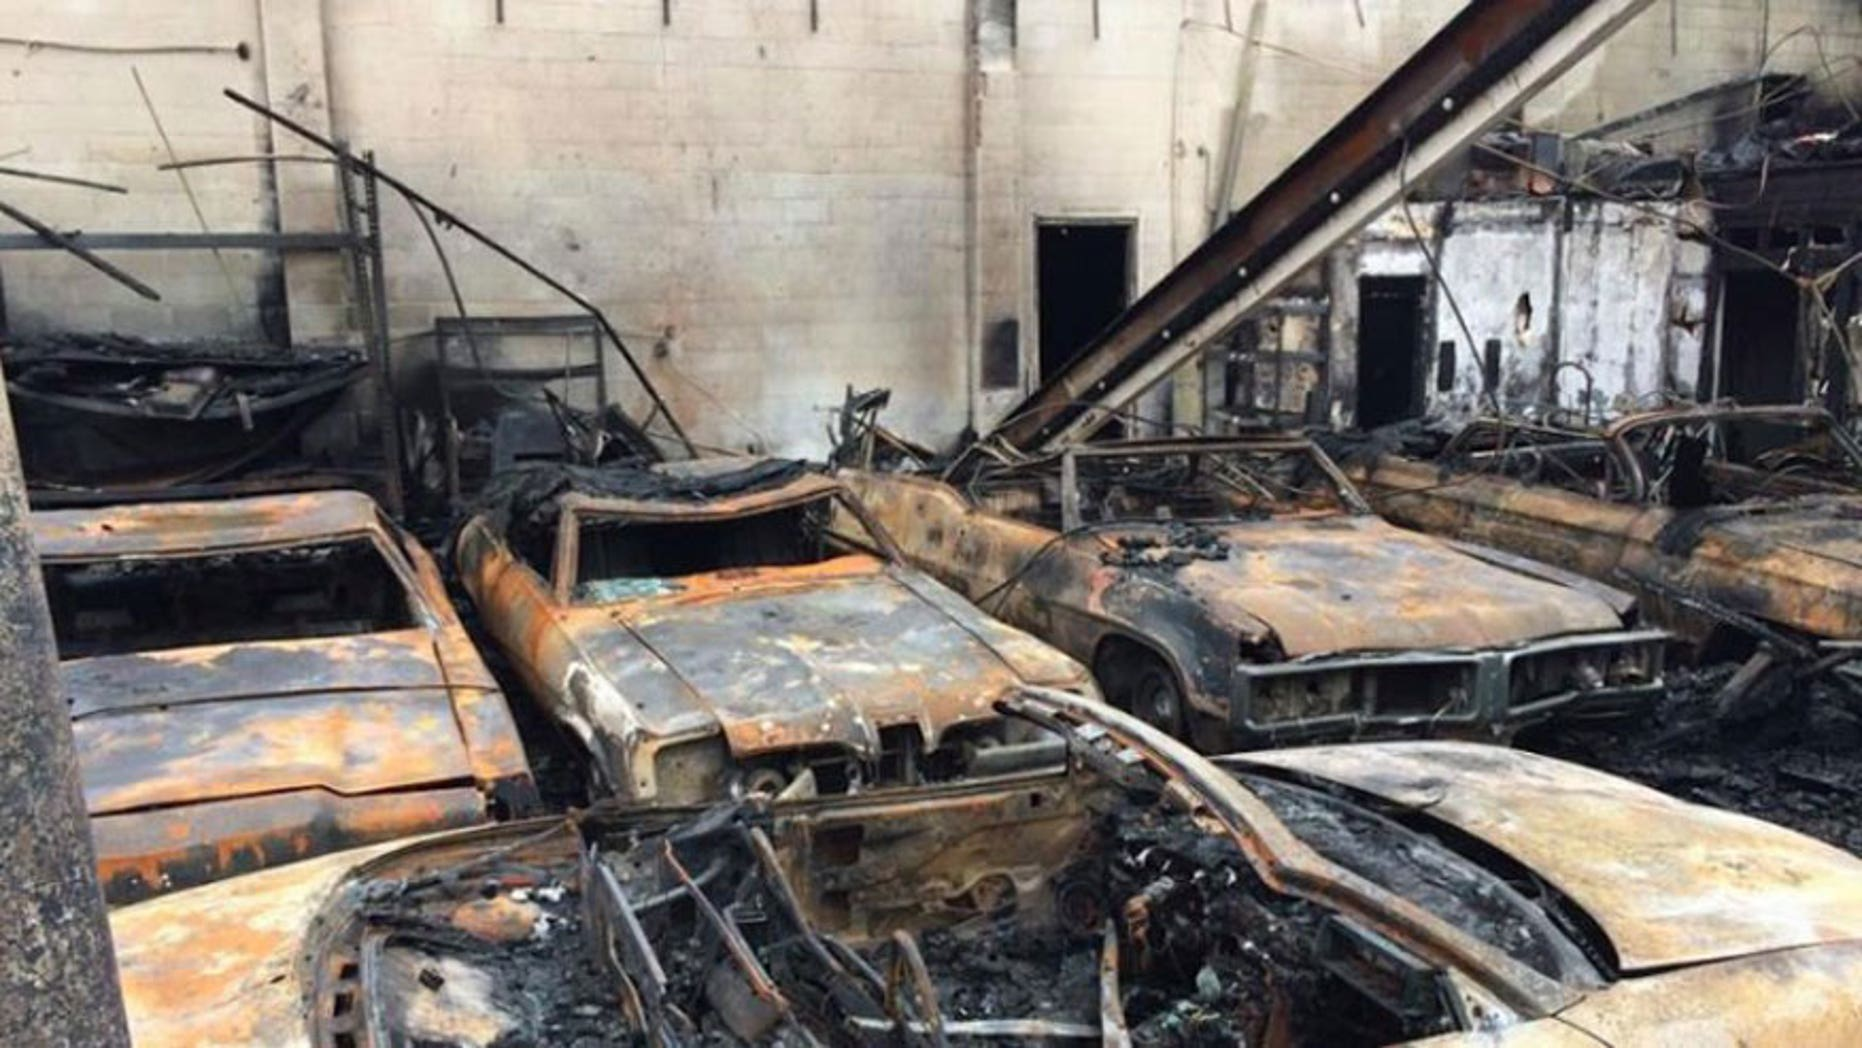 International Vehicle Importers >> Pot Growing Neighbors Blamed For Fire That Killed Import